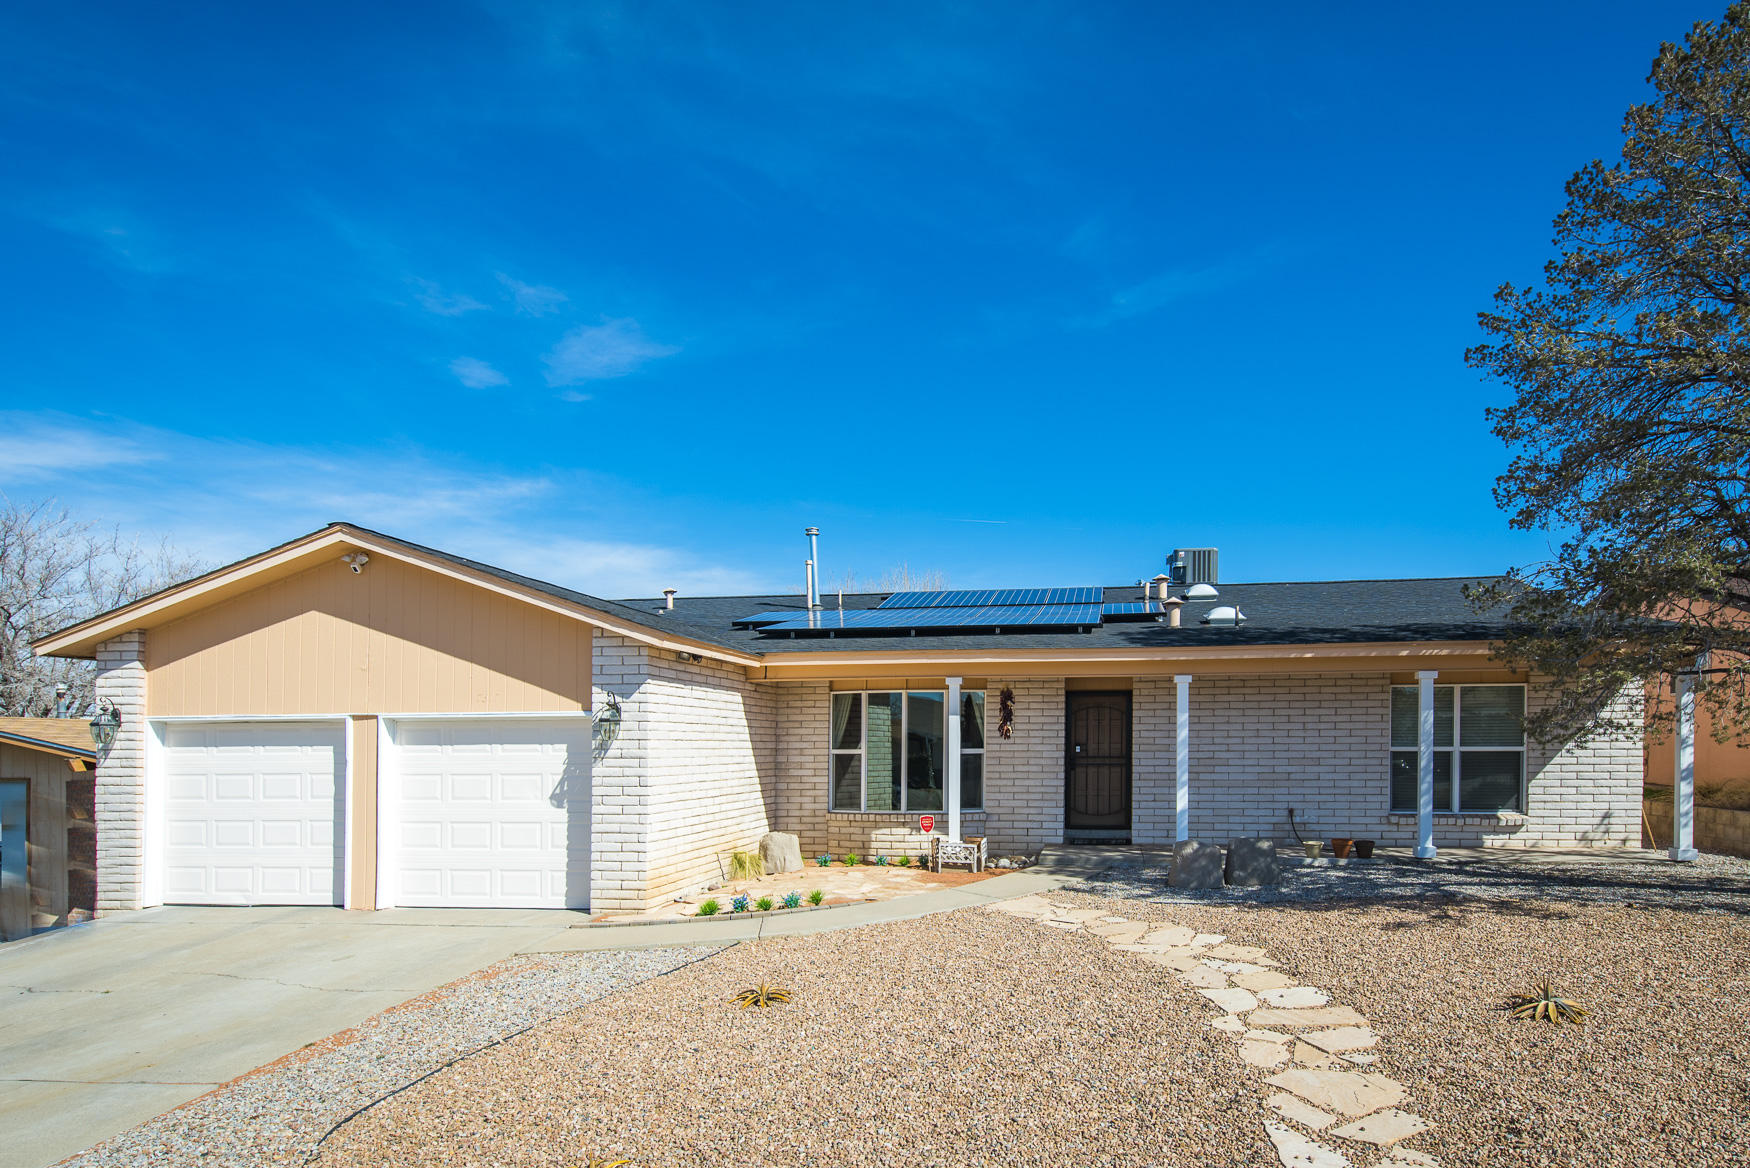 7317 Welton Drive NE Property Photo - Albuquerque, NM real estate listing